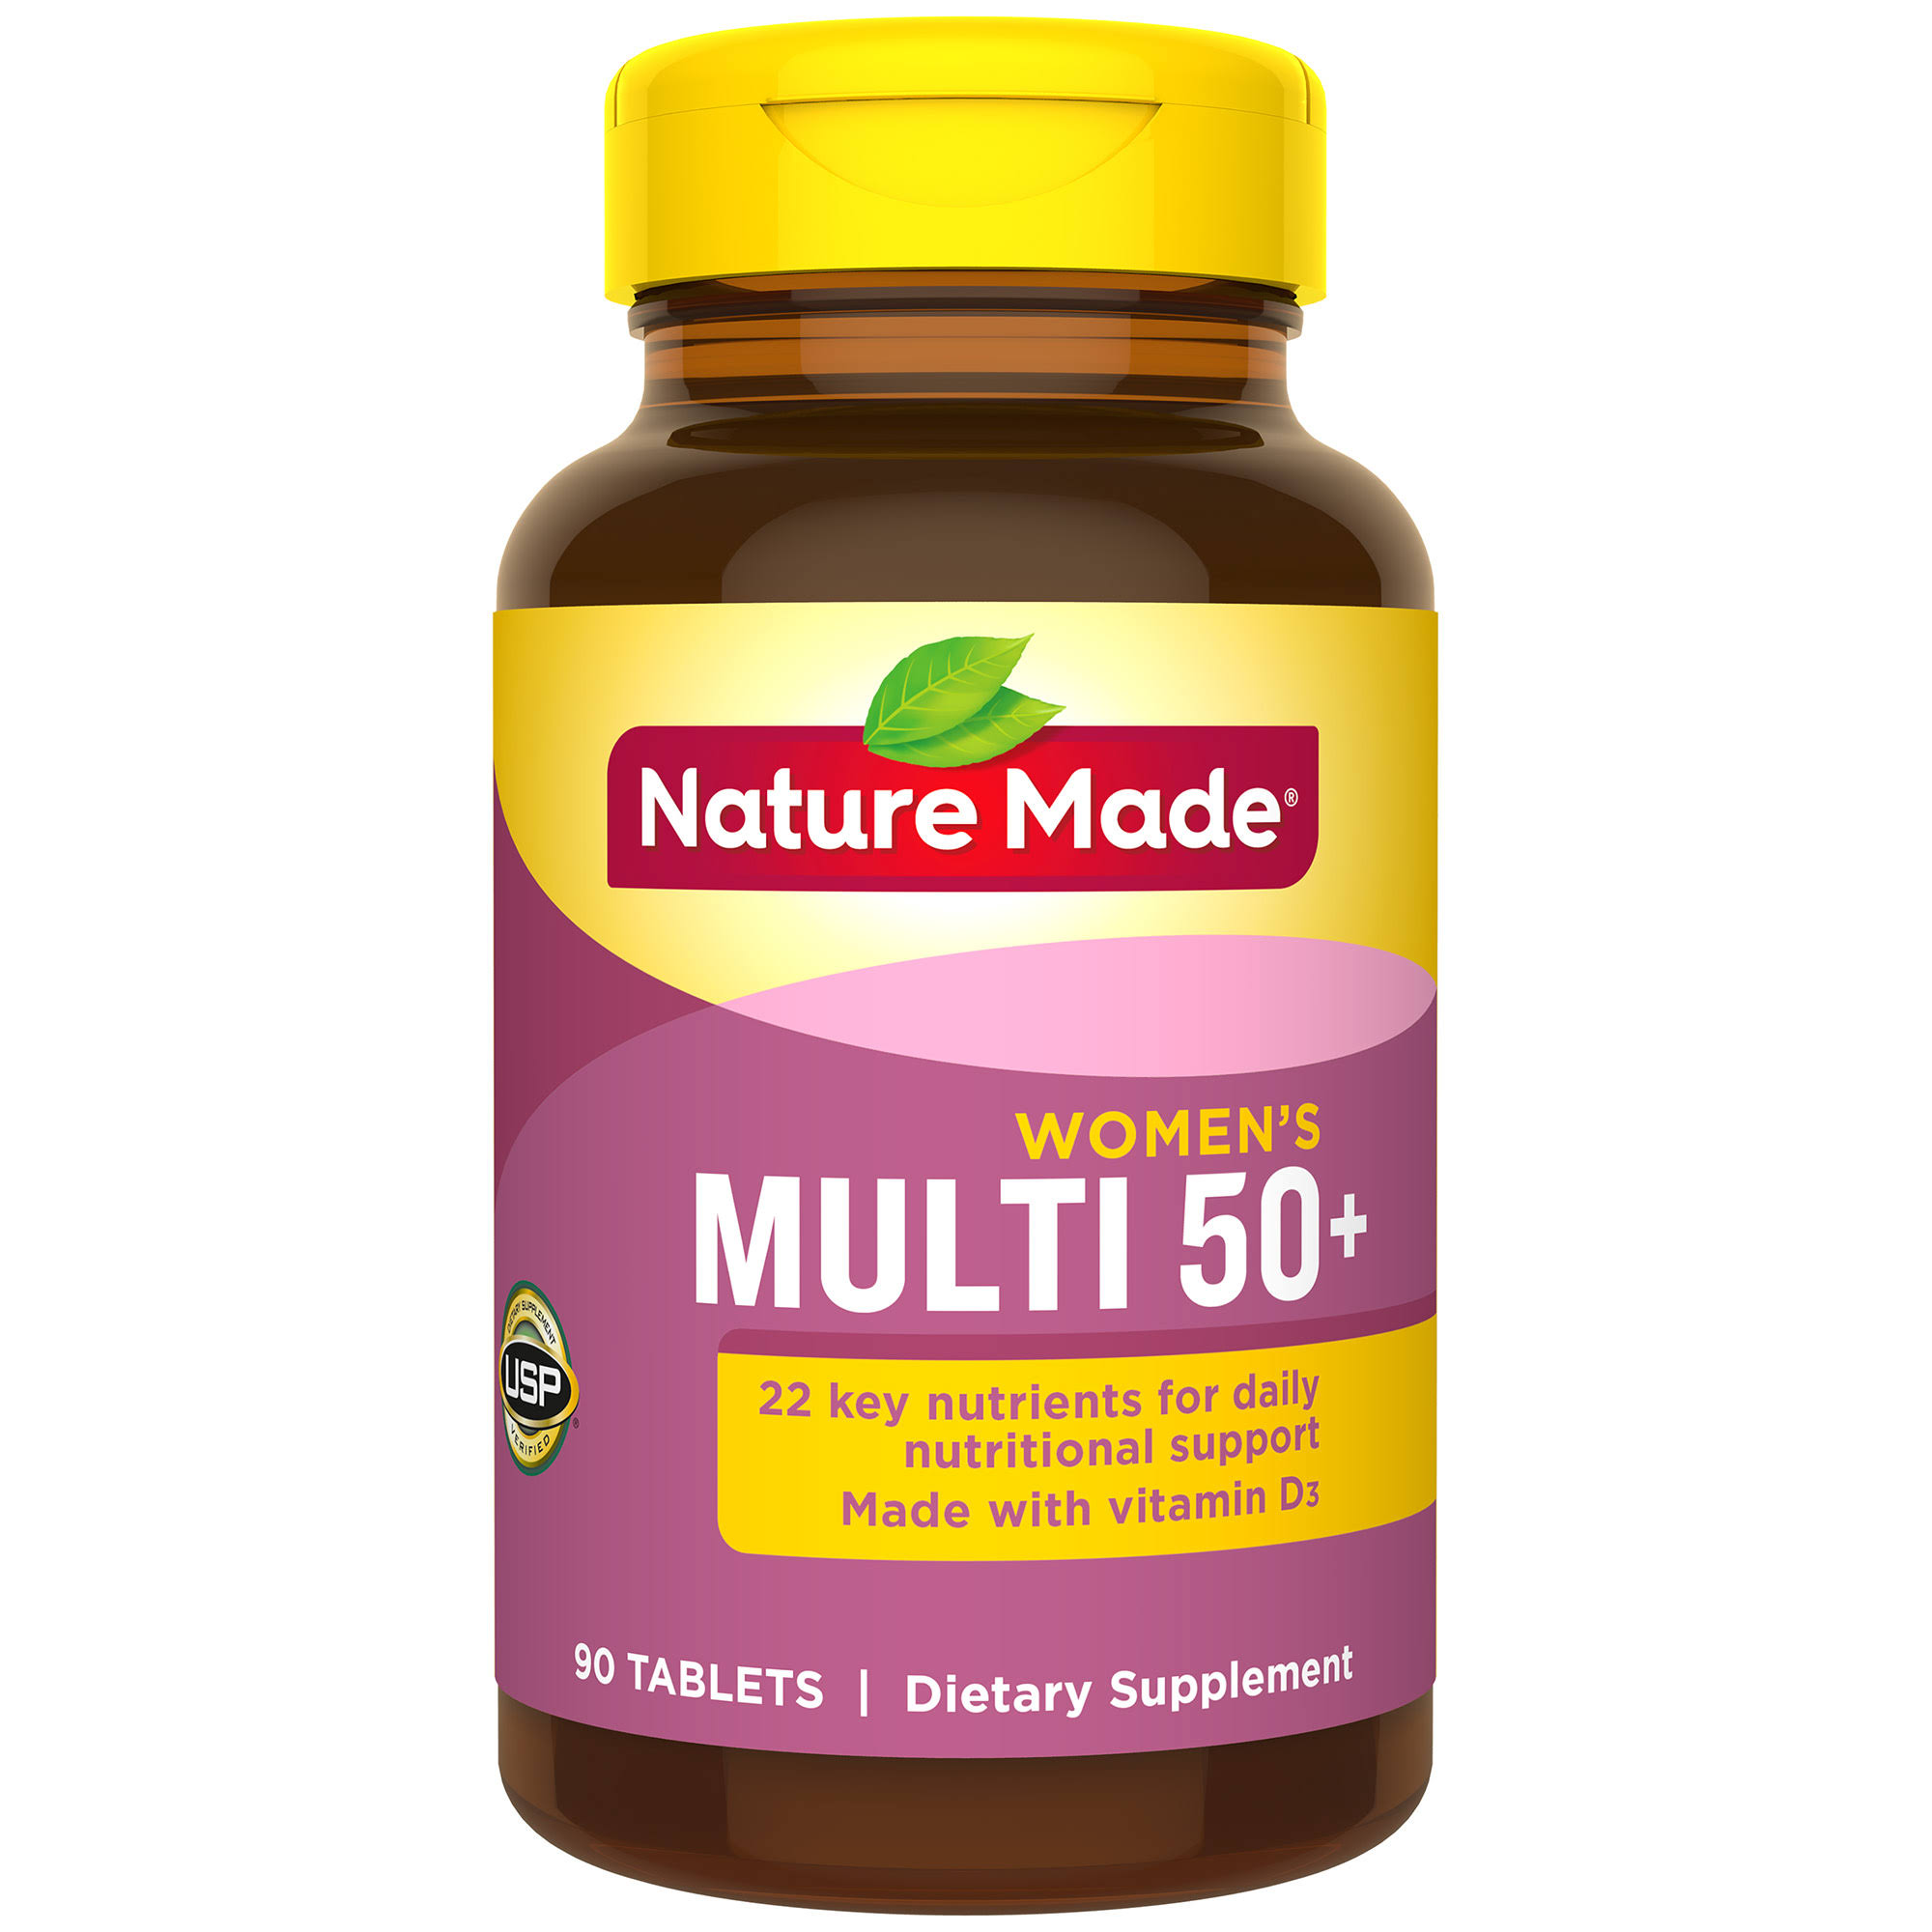 Nature Made Multi Vitamin and Mineral For Her 50+ - 90 Tablets